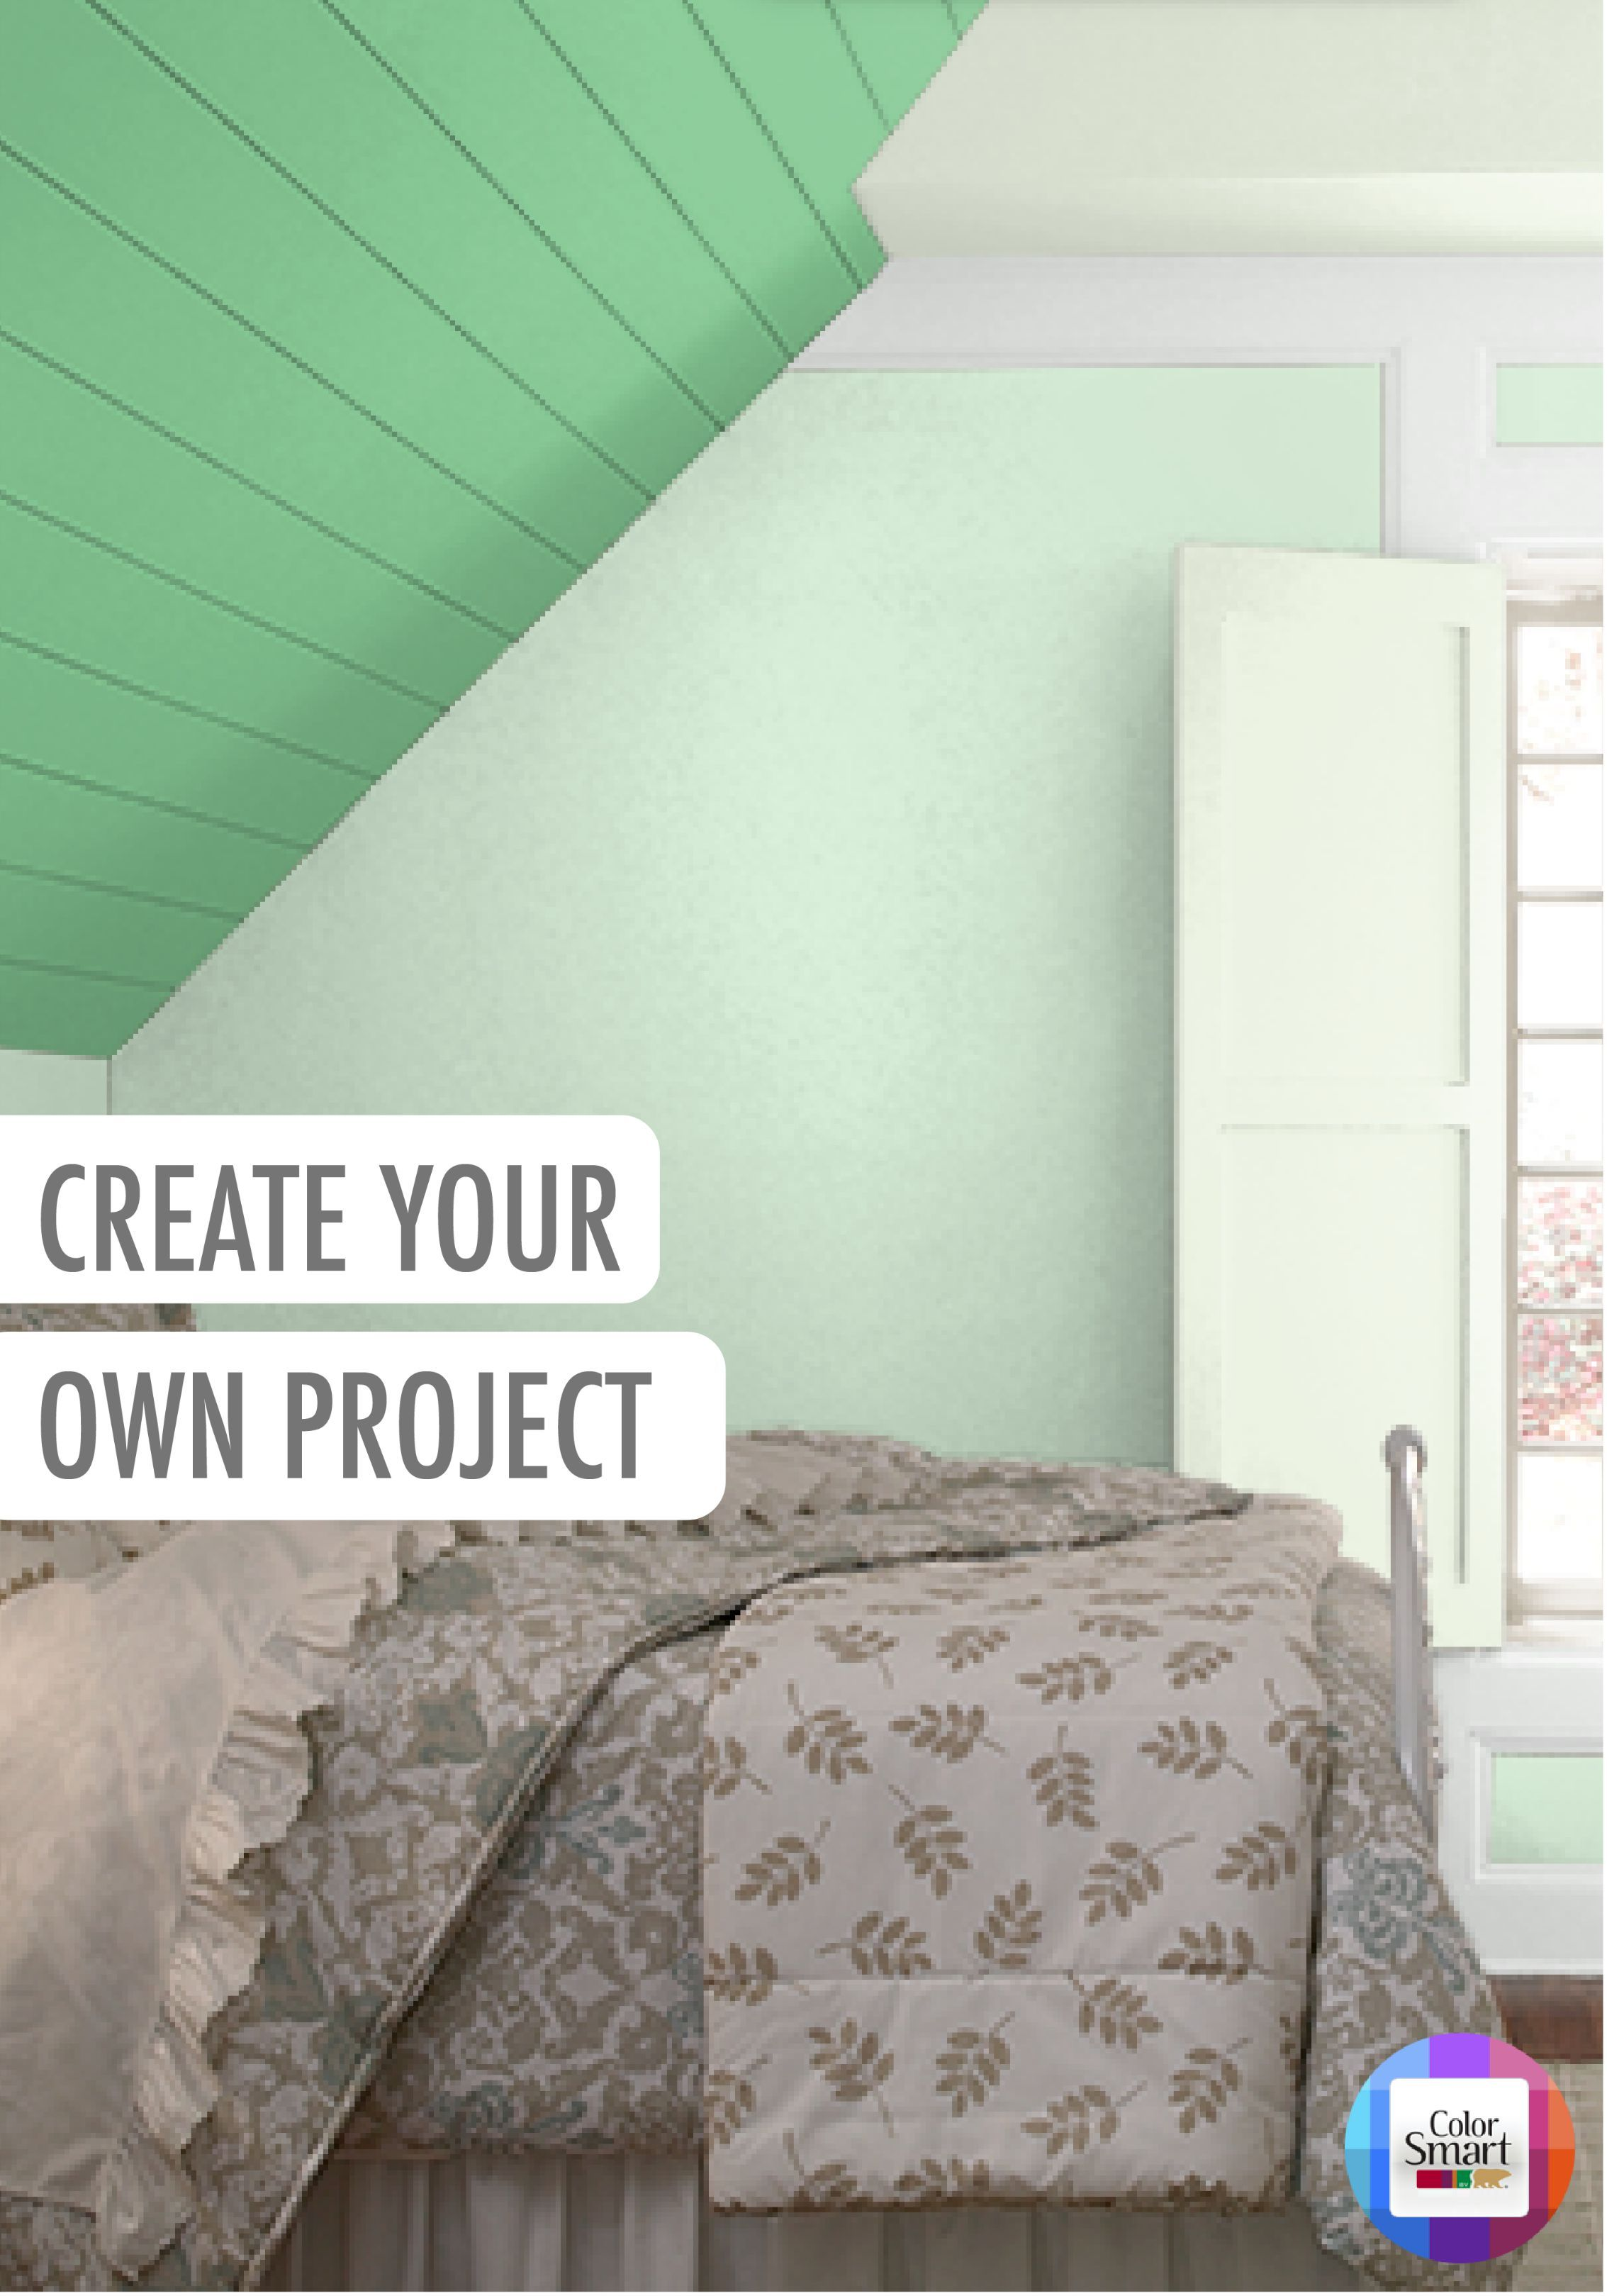 Customize your own bedroom  kitchen  living room  or entryway with  suggested BEHR paint color palettes  Find out what colors will look best in  your new home. Customize your own bedroom  kitchen  living room  or entryway with